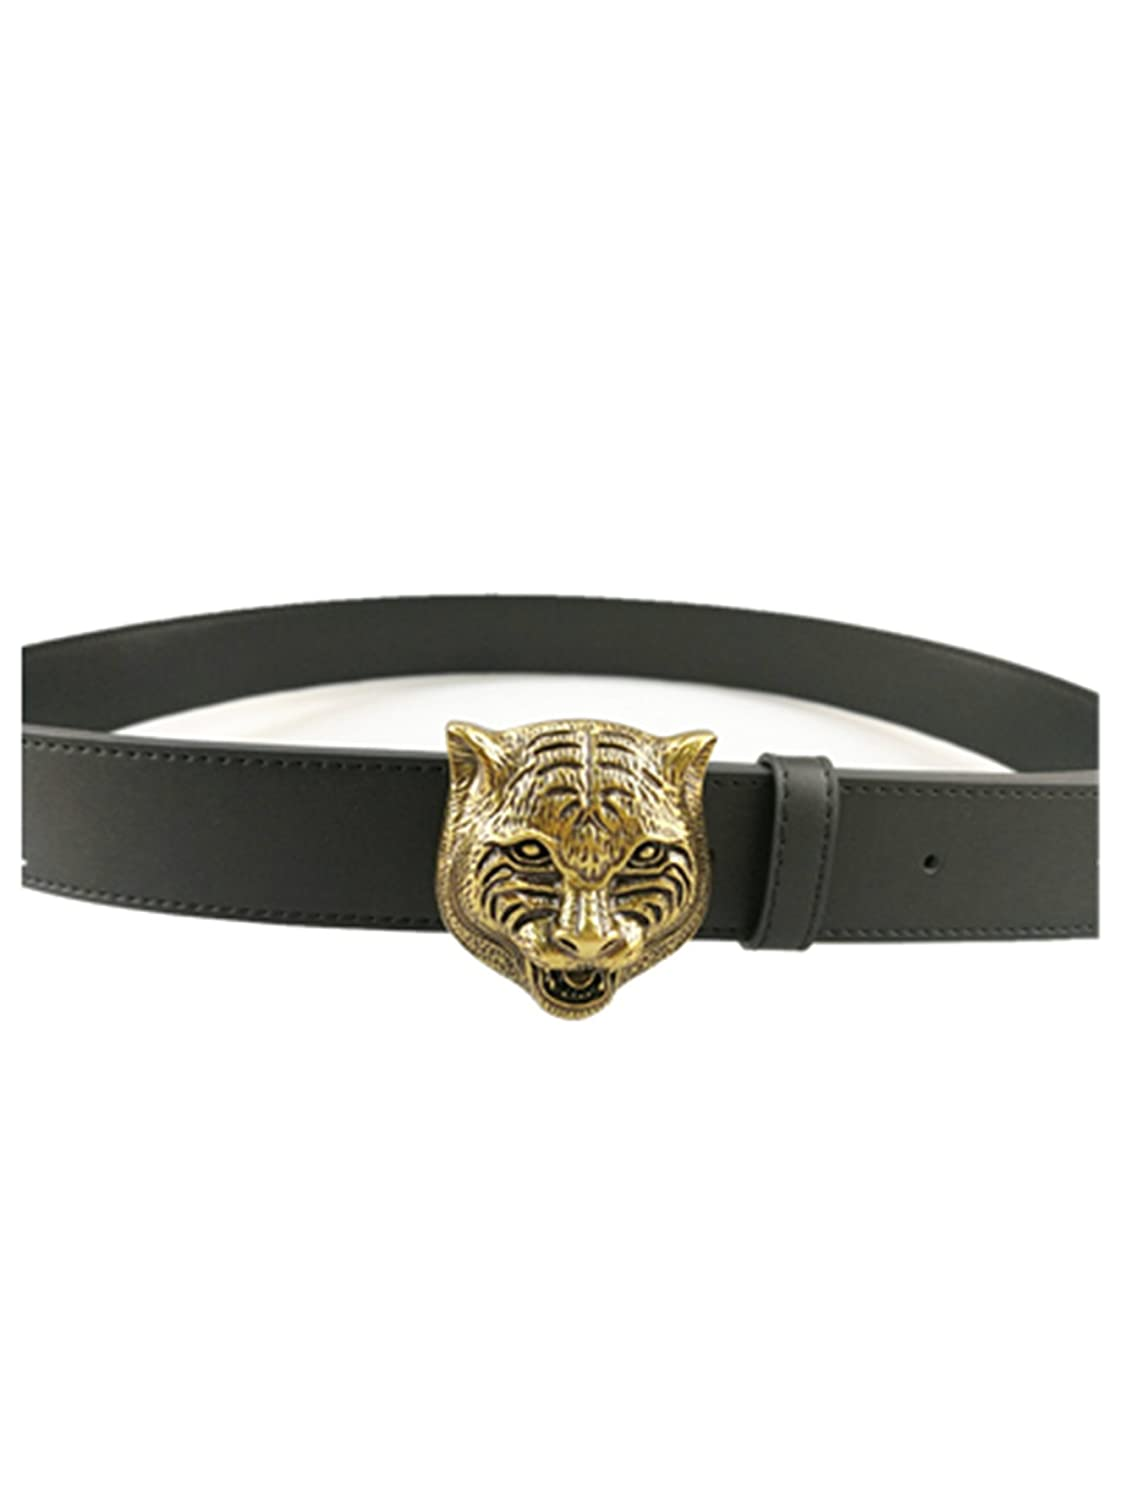 Mens fashion casual tiger buckle leather belt